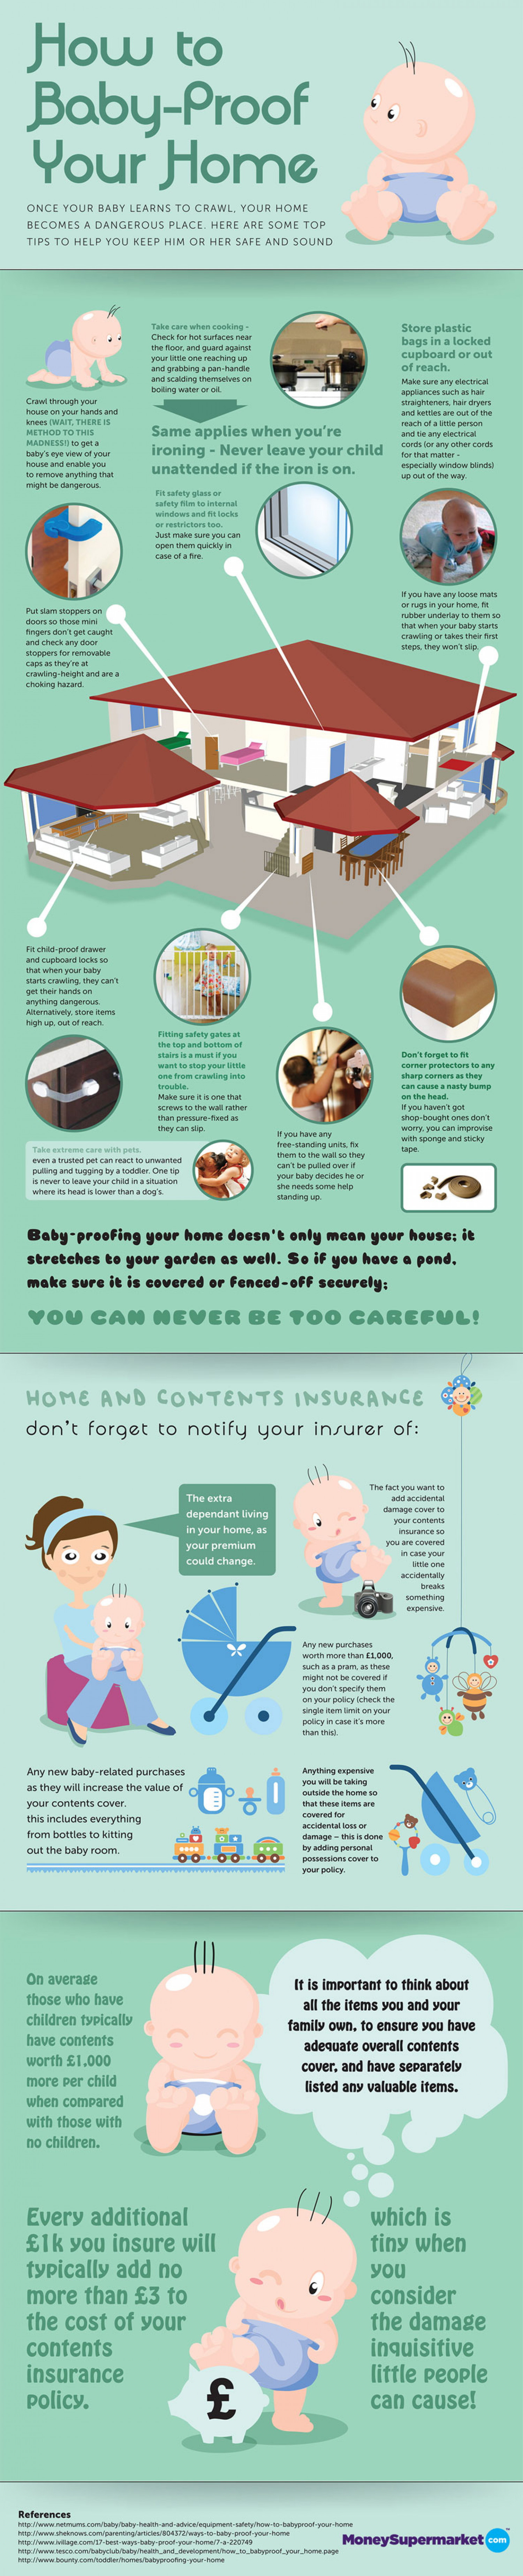 How to Baby-Proof Your Home [Infographic] Infographic